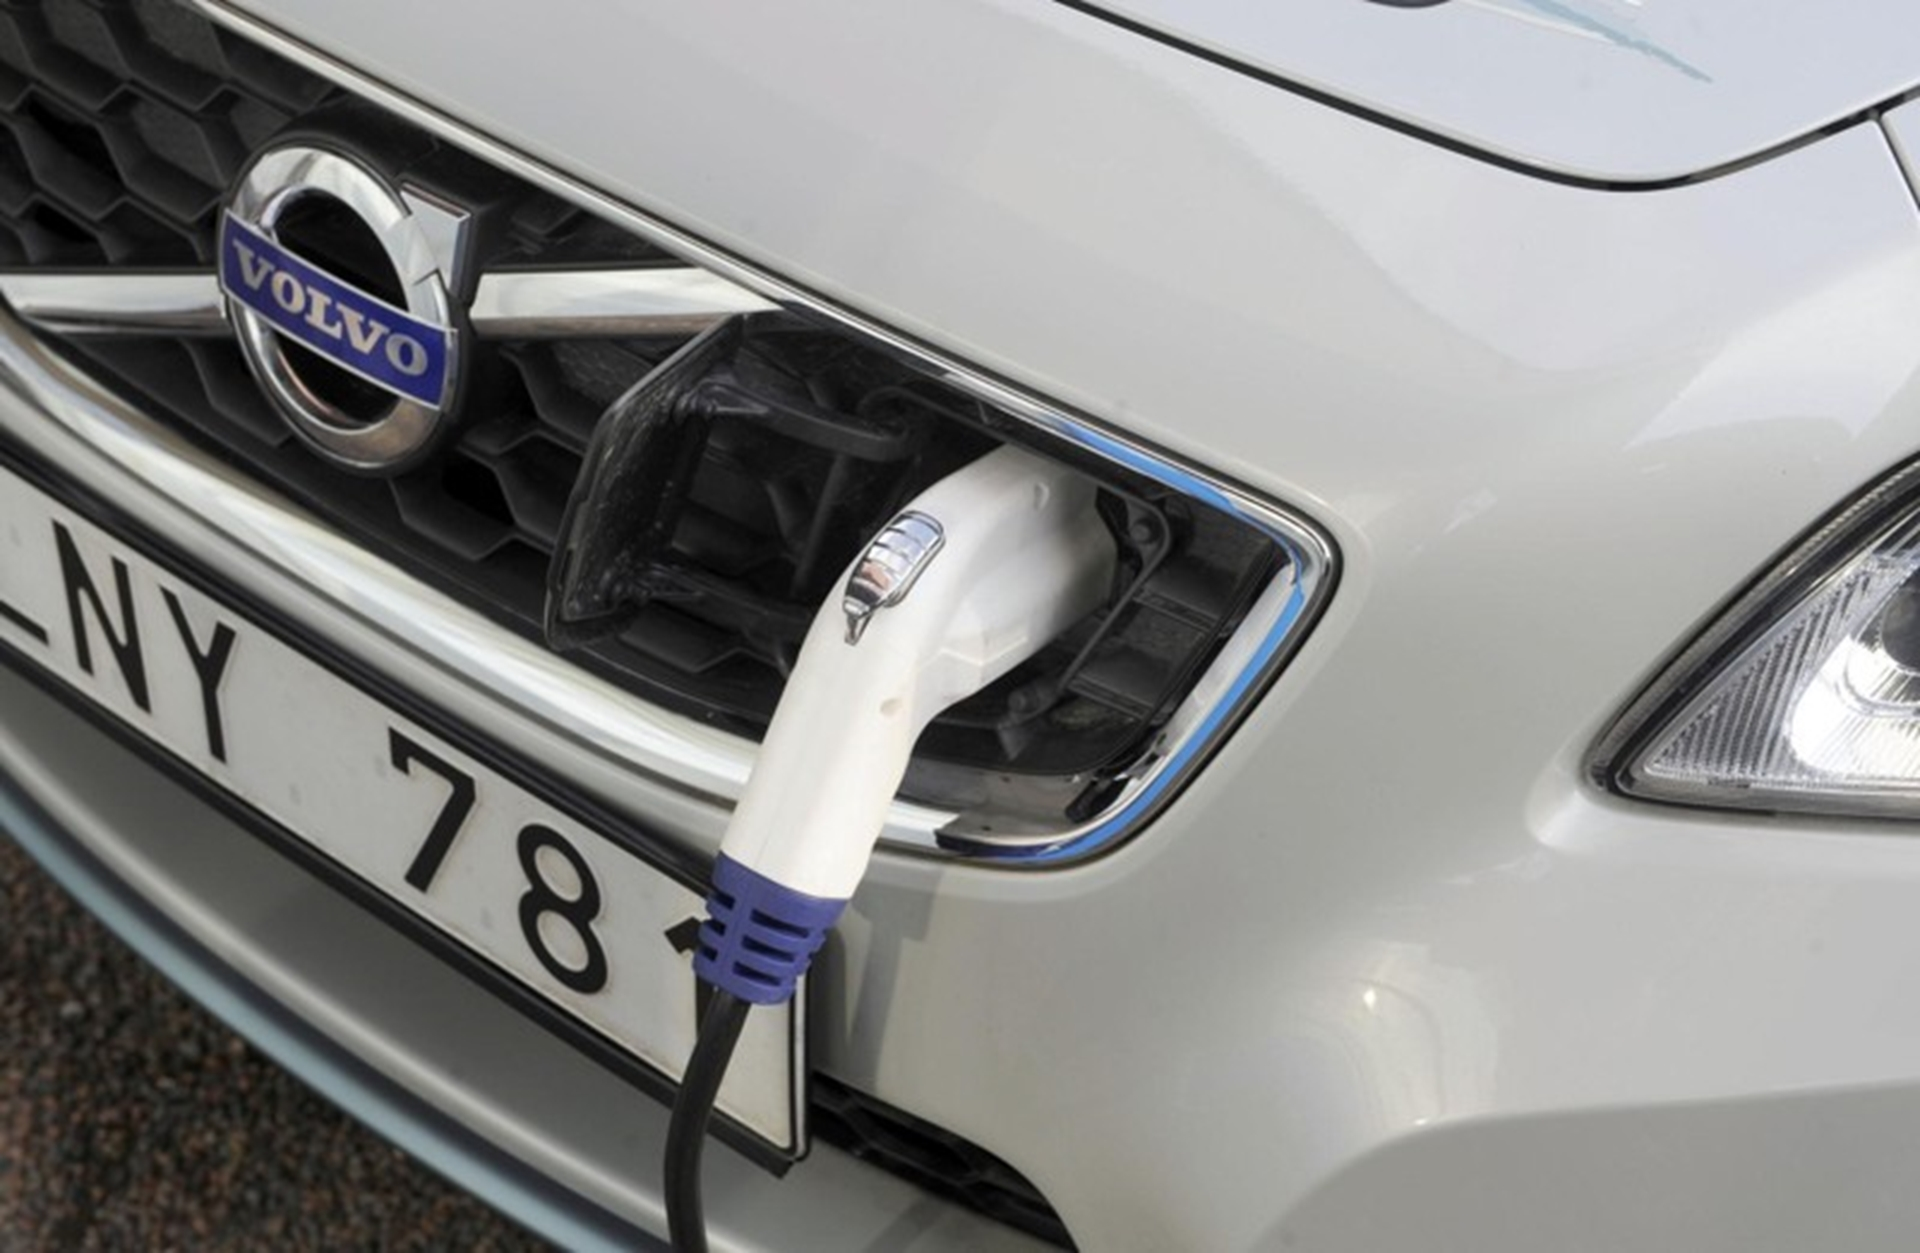 Volvo Electric Car Charge Inlet